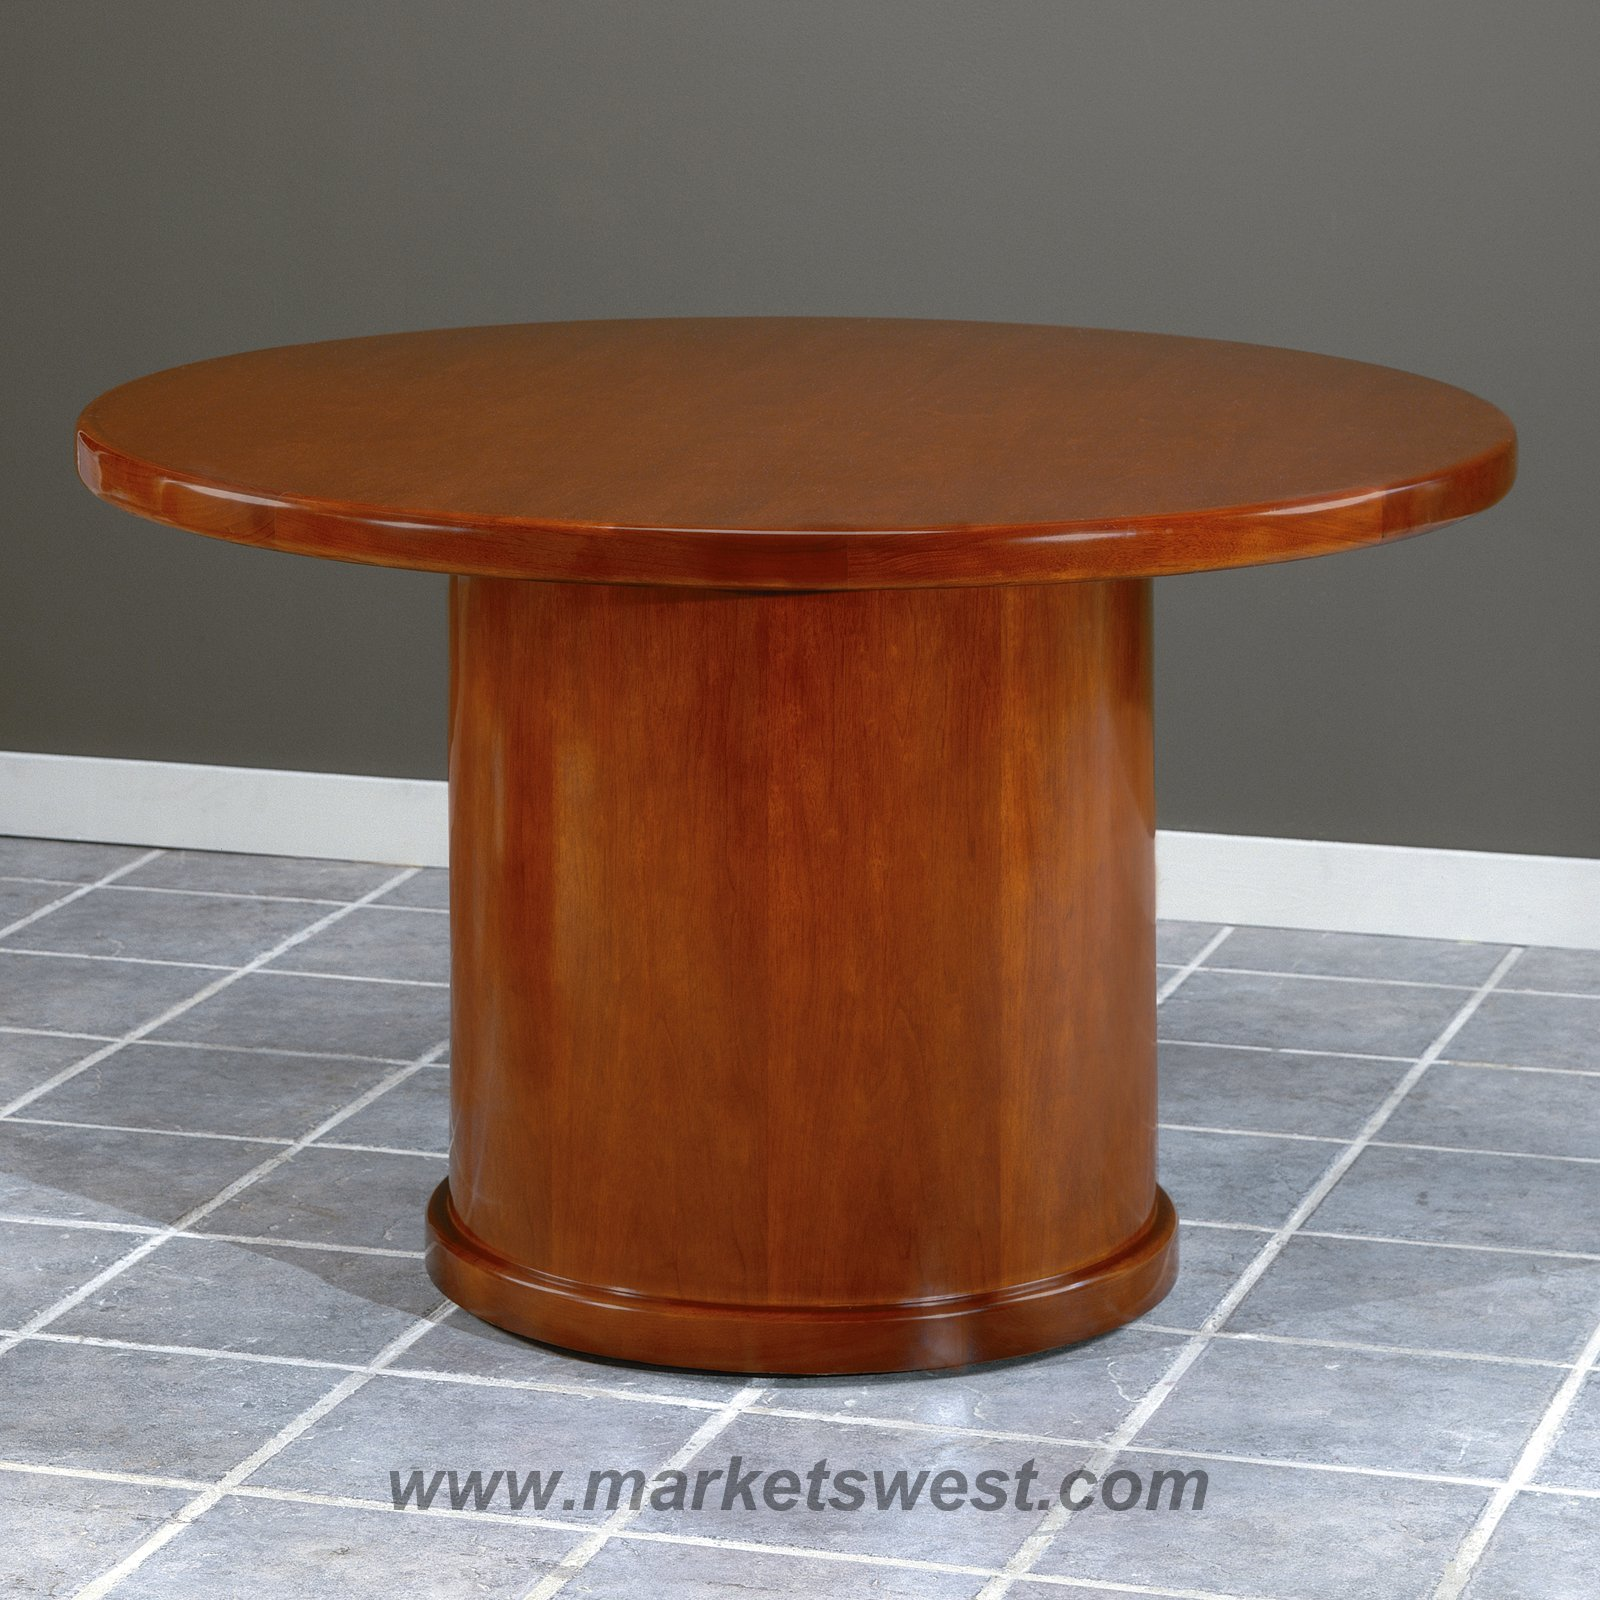 In Round Conference Table Dark Cherry Wood - Round pedestal conference table